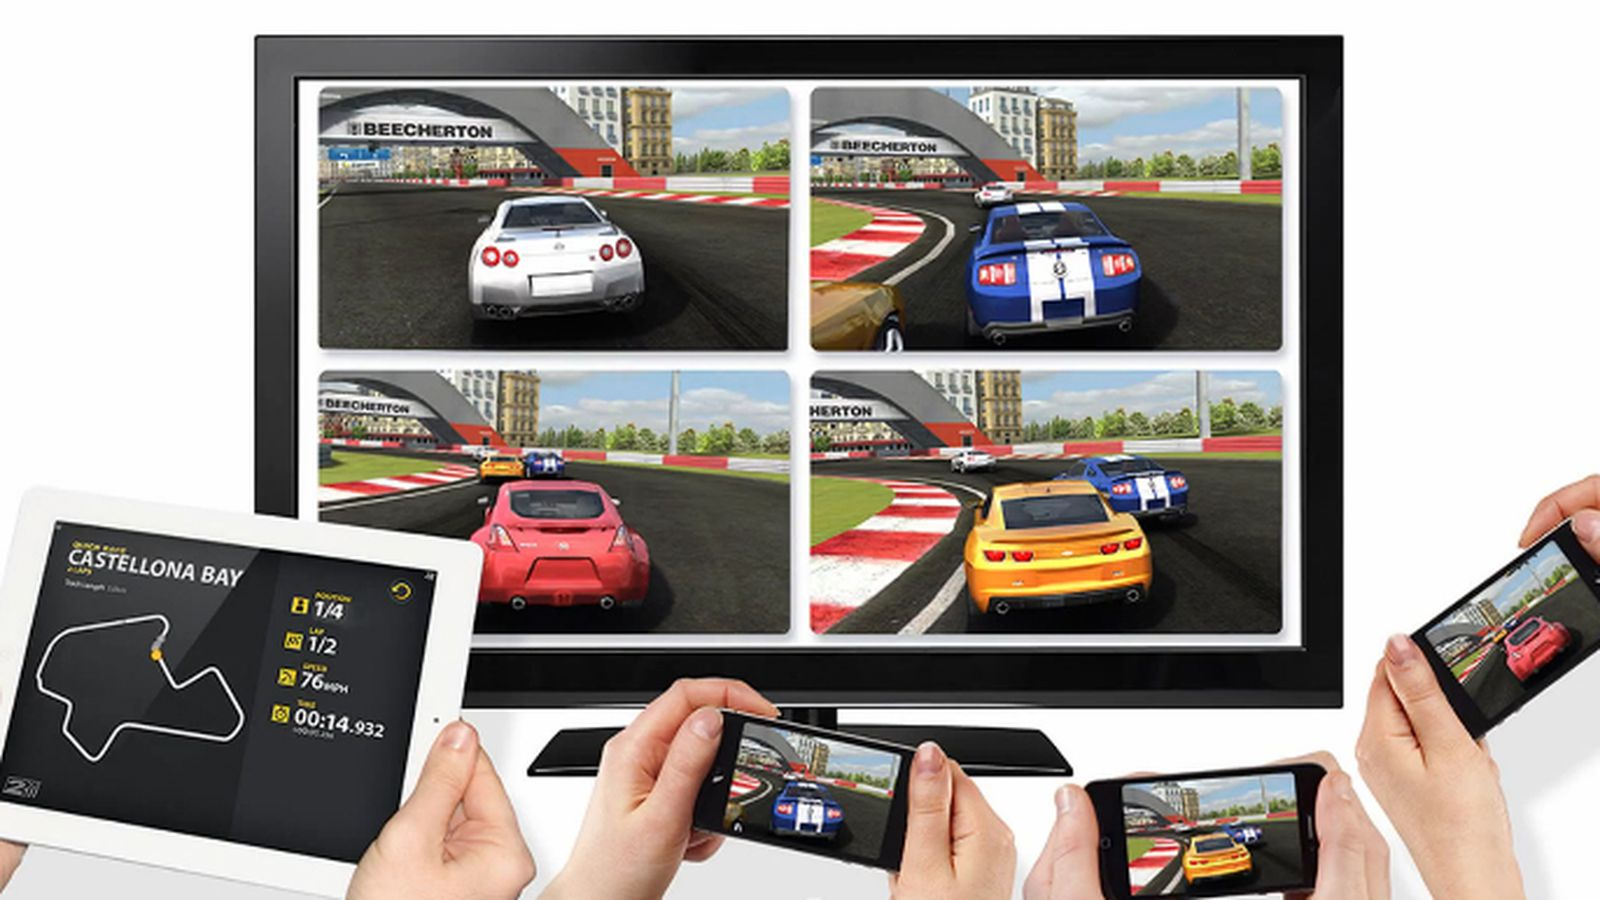 ios 5 airplay mirroring brings split screen multiplayer gaming to your apple tv the verge. Black Bedroom Furniture Sets. Home Design Ideas